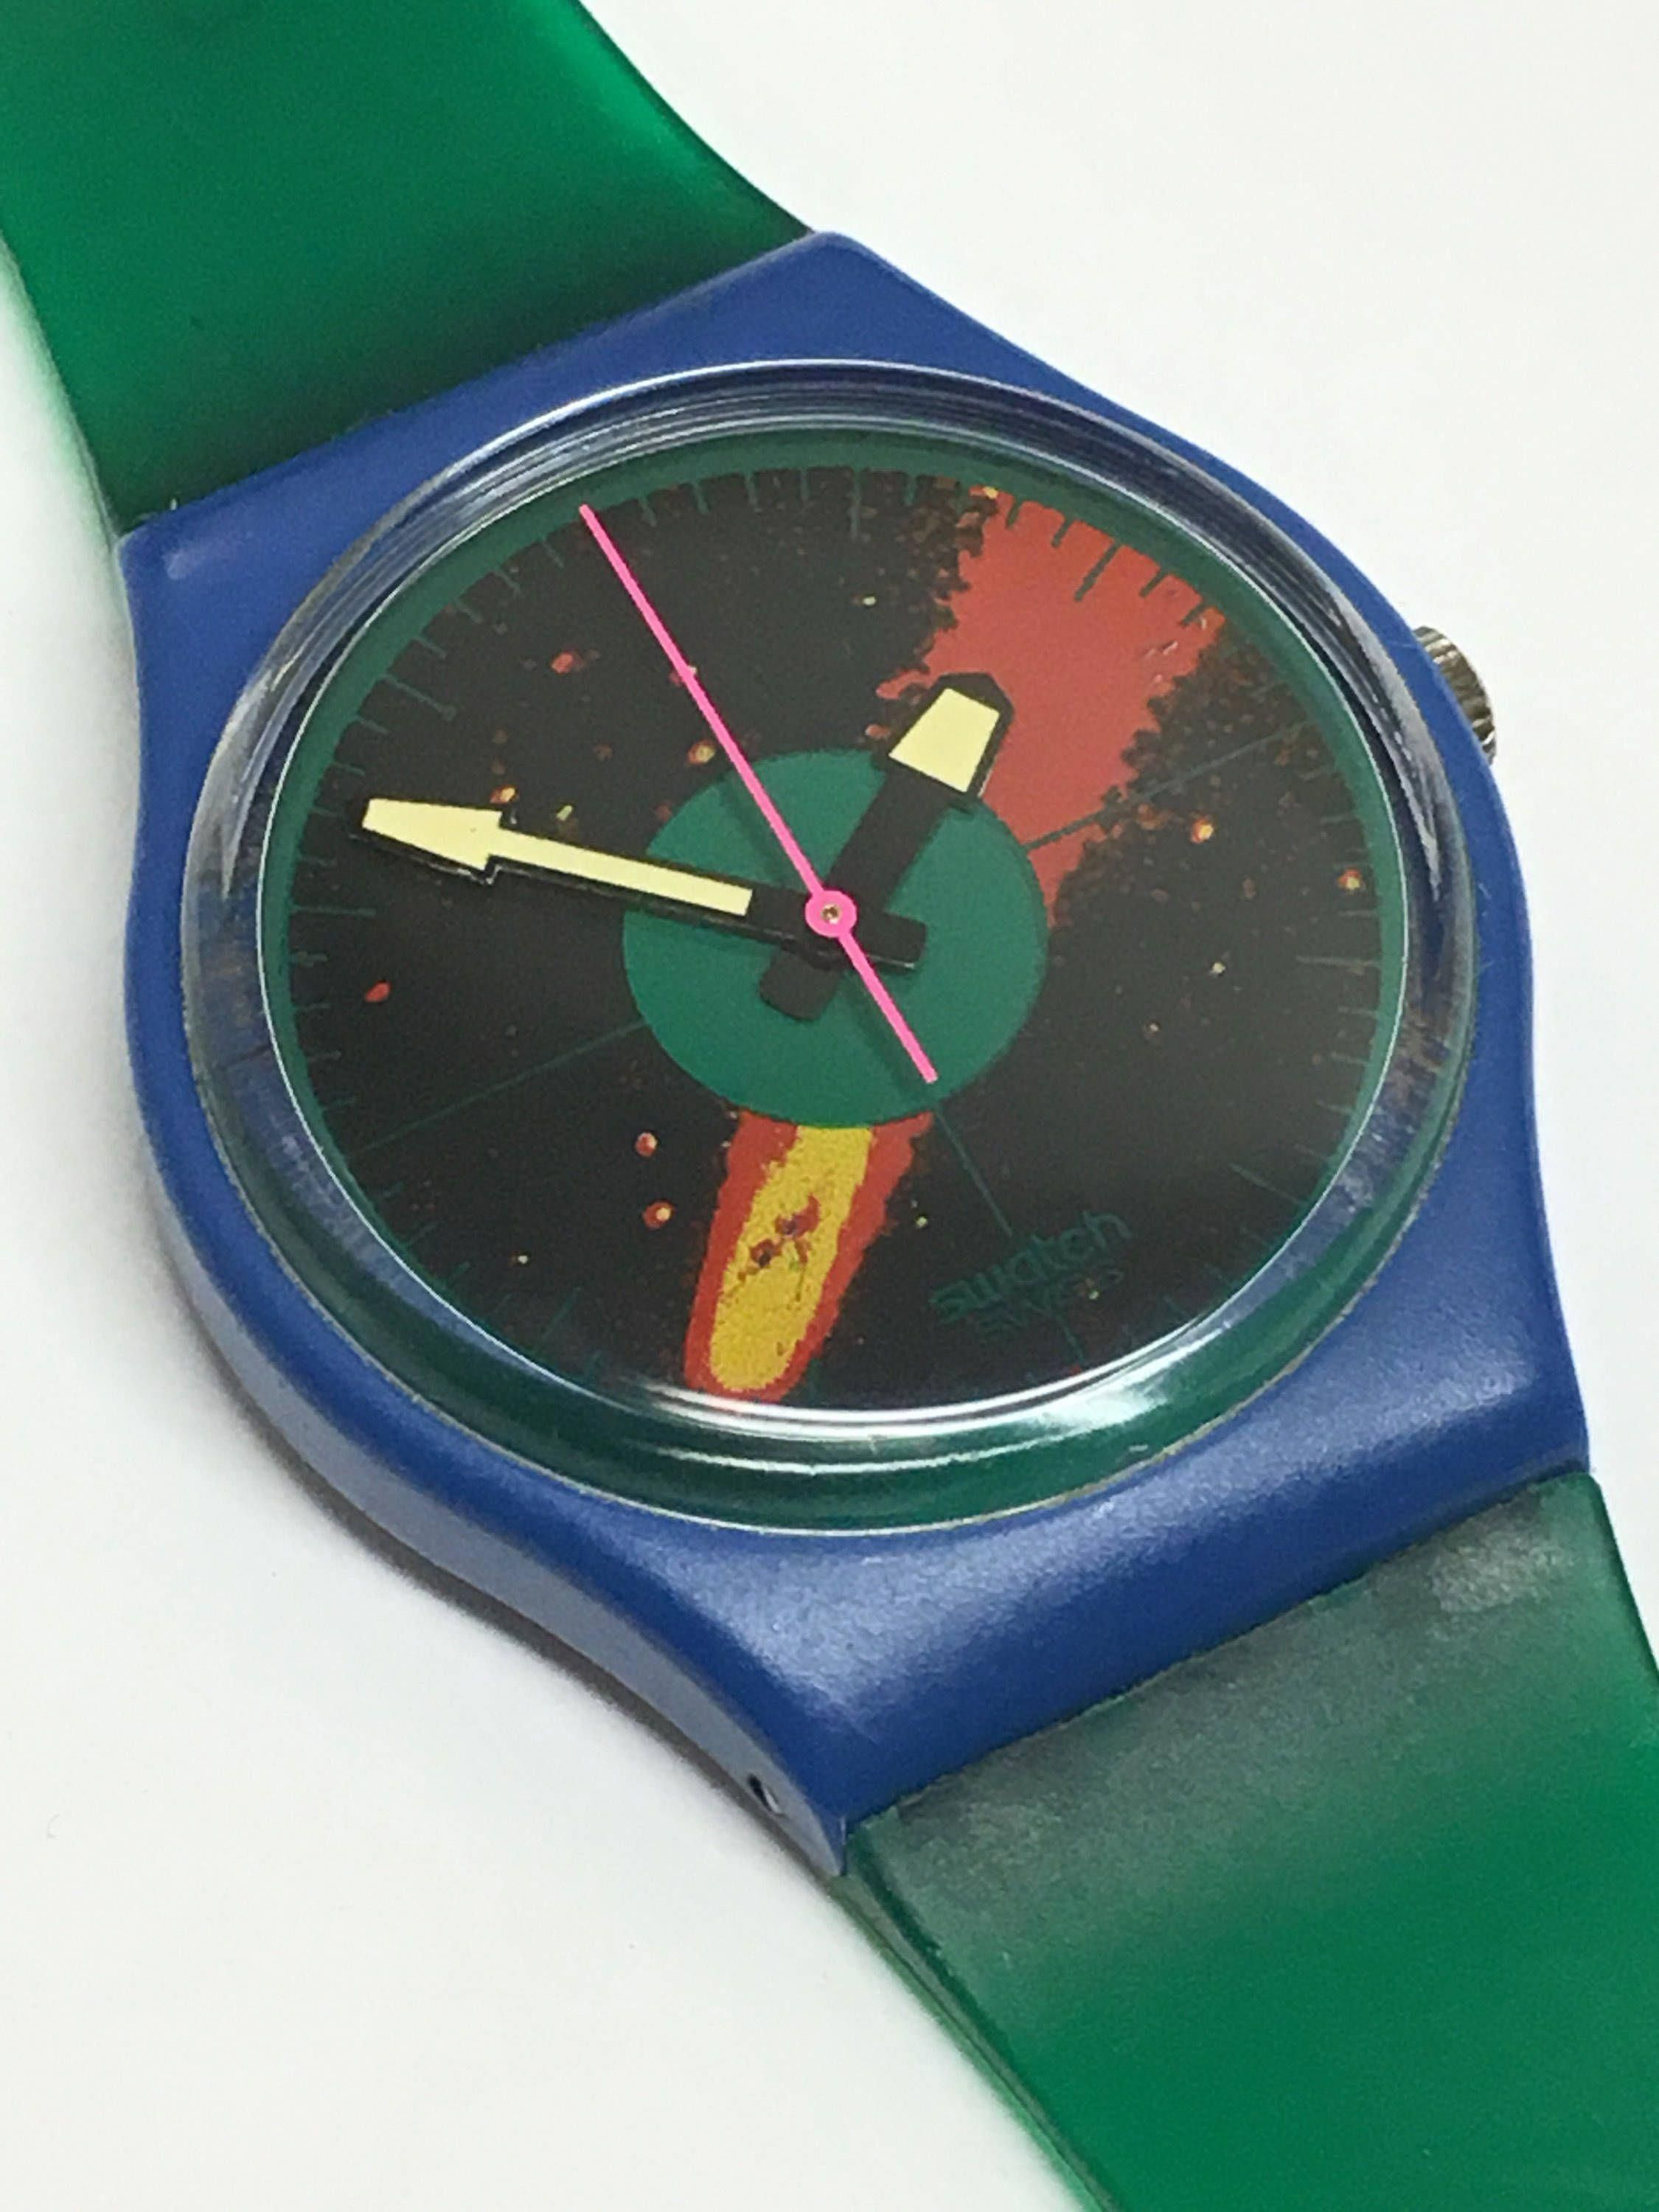 Christmas Comet 2020 Where To Look Vintage Swatch Watch Cosmic Encounter GS102 1986 Blue Green Jelly